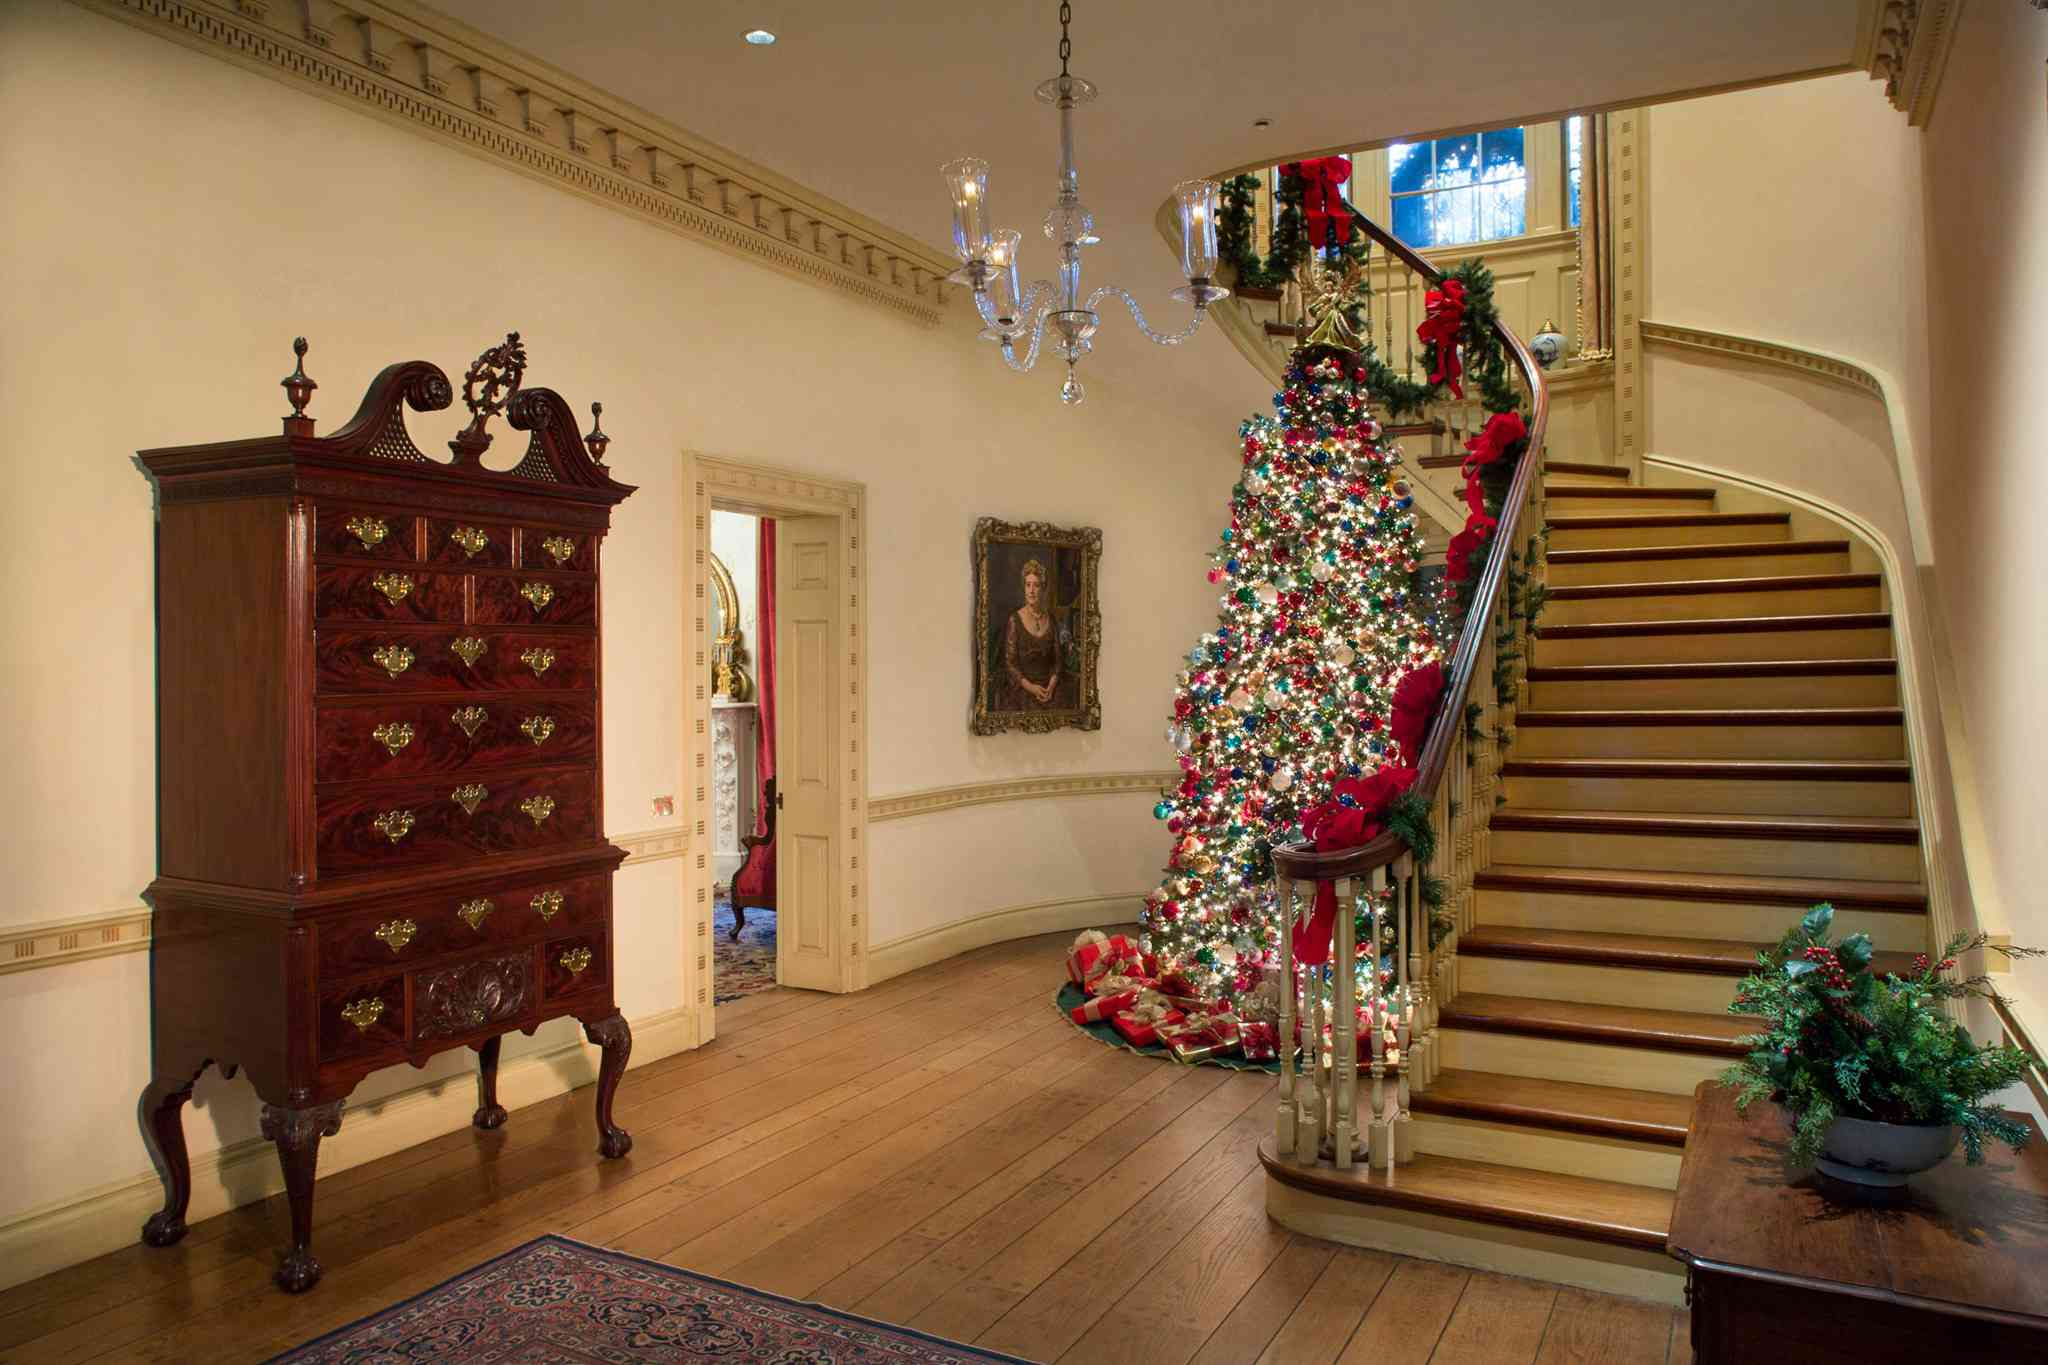 Christmas tree at the Bayou Bend Collection and Gardens